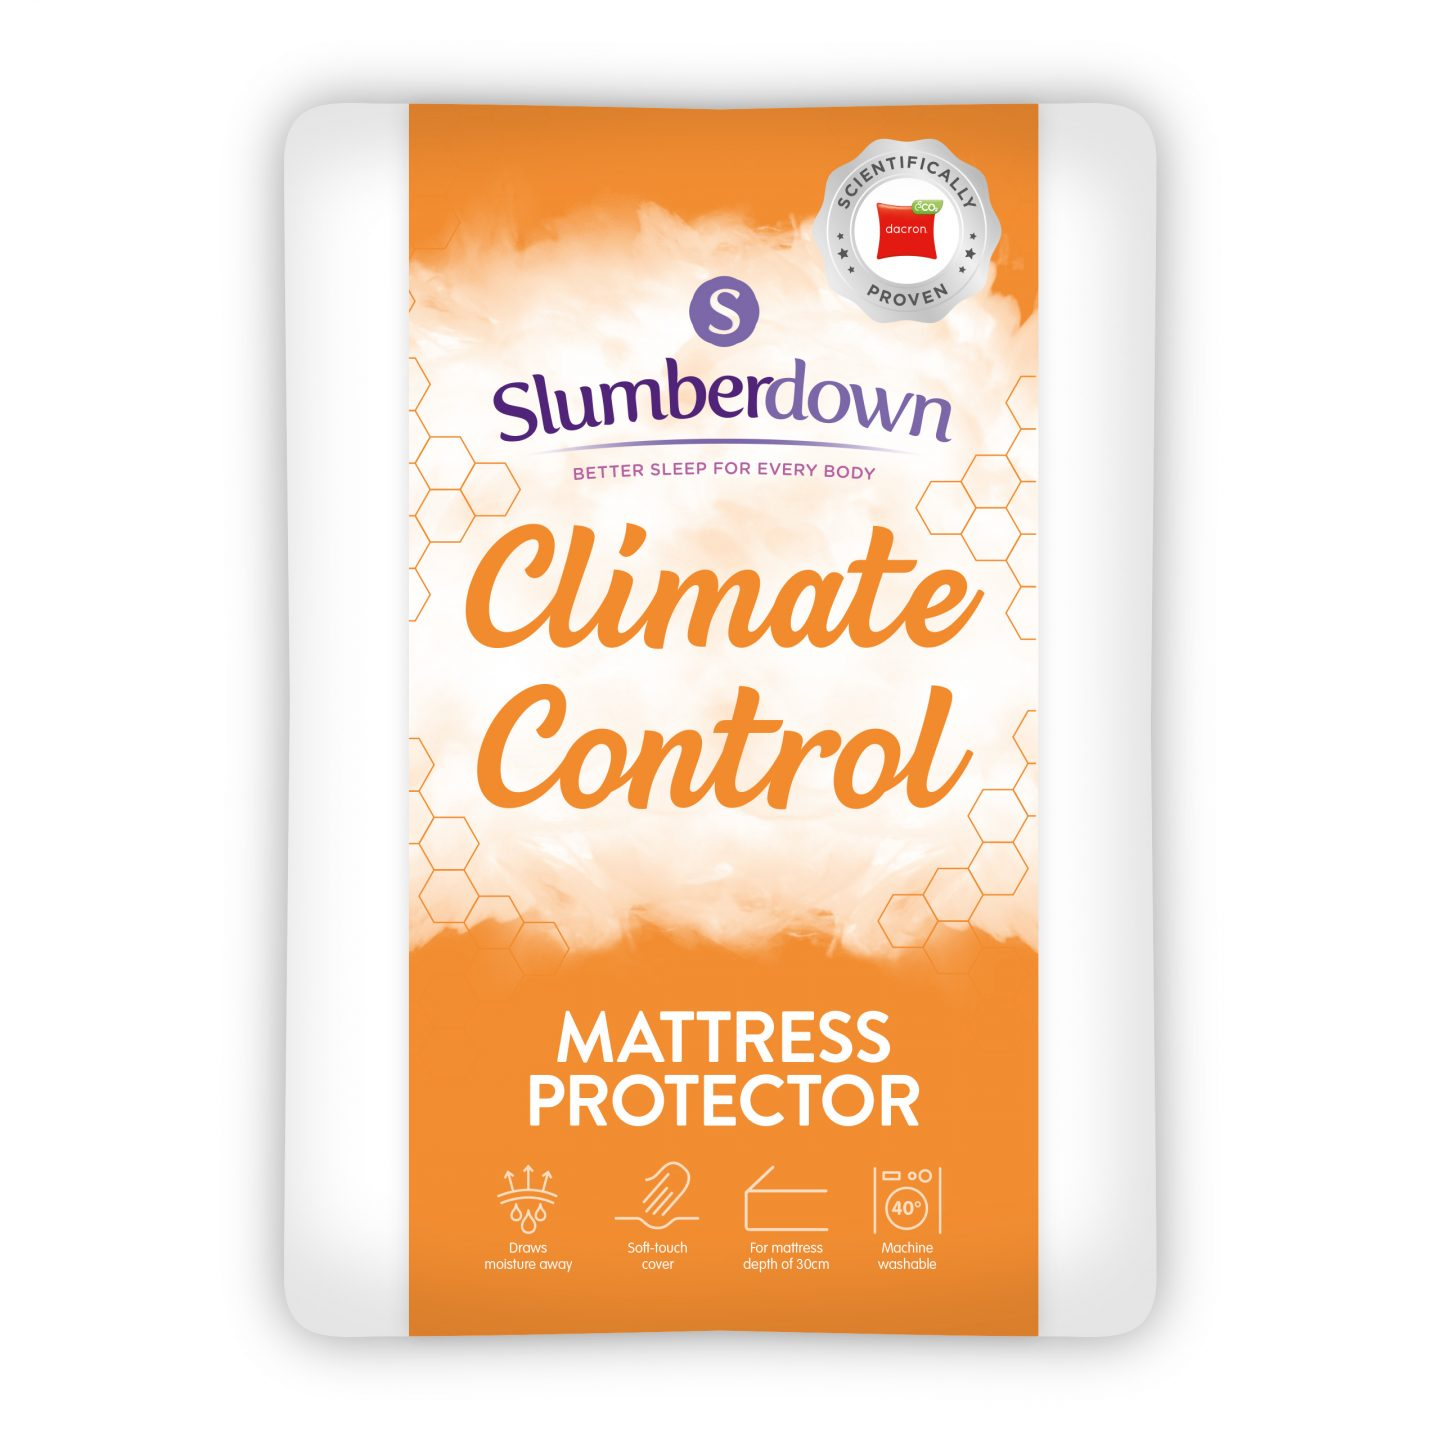 Slumberdown Climate Control Mattress Protector